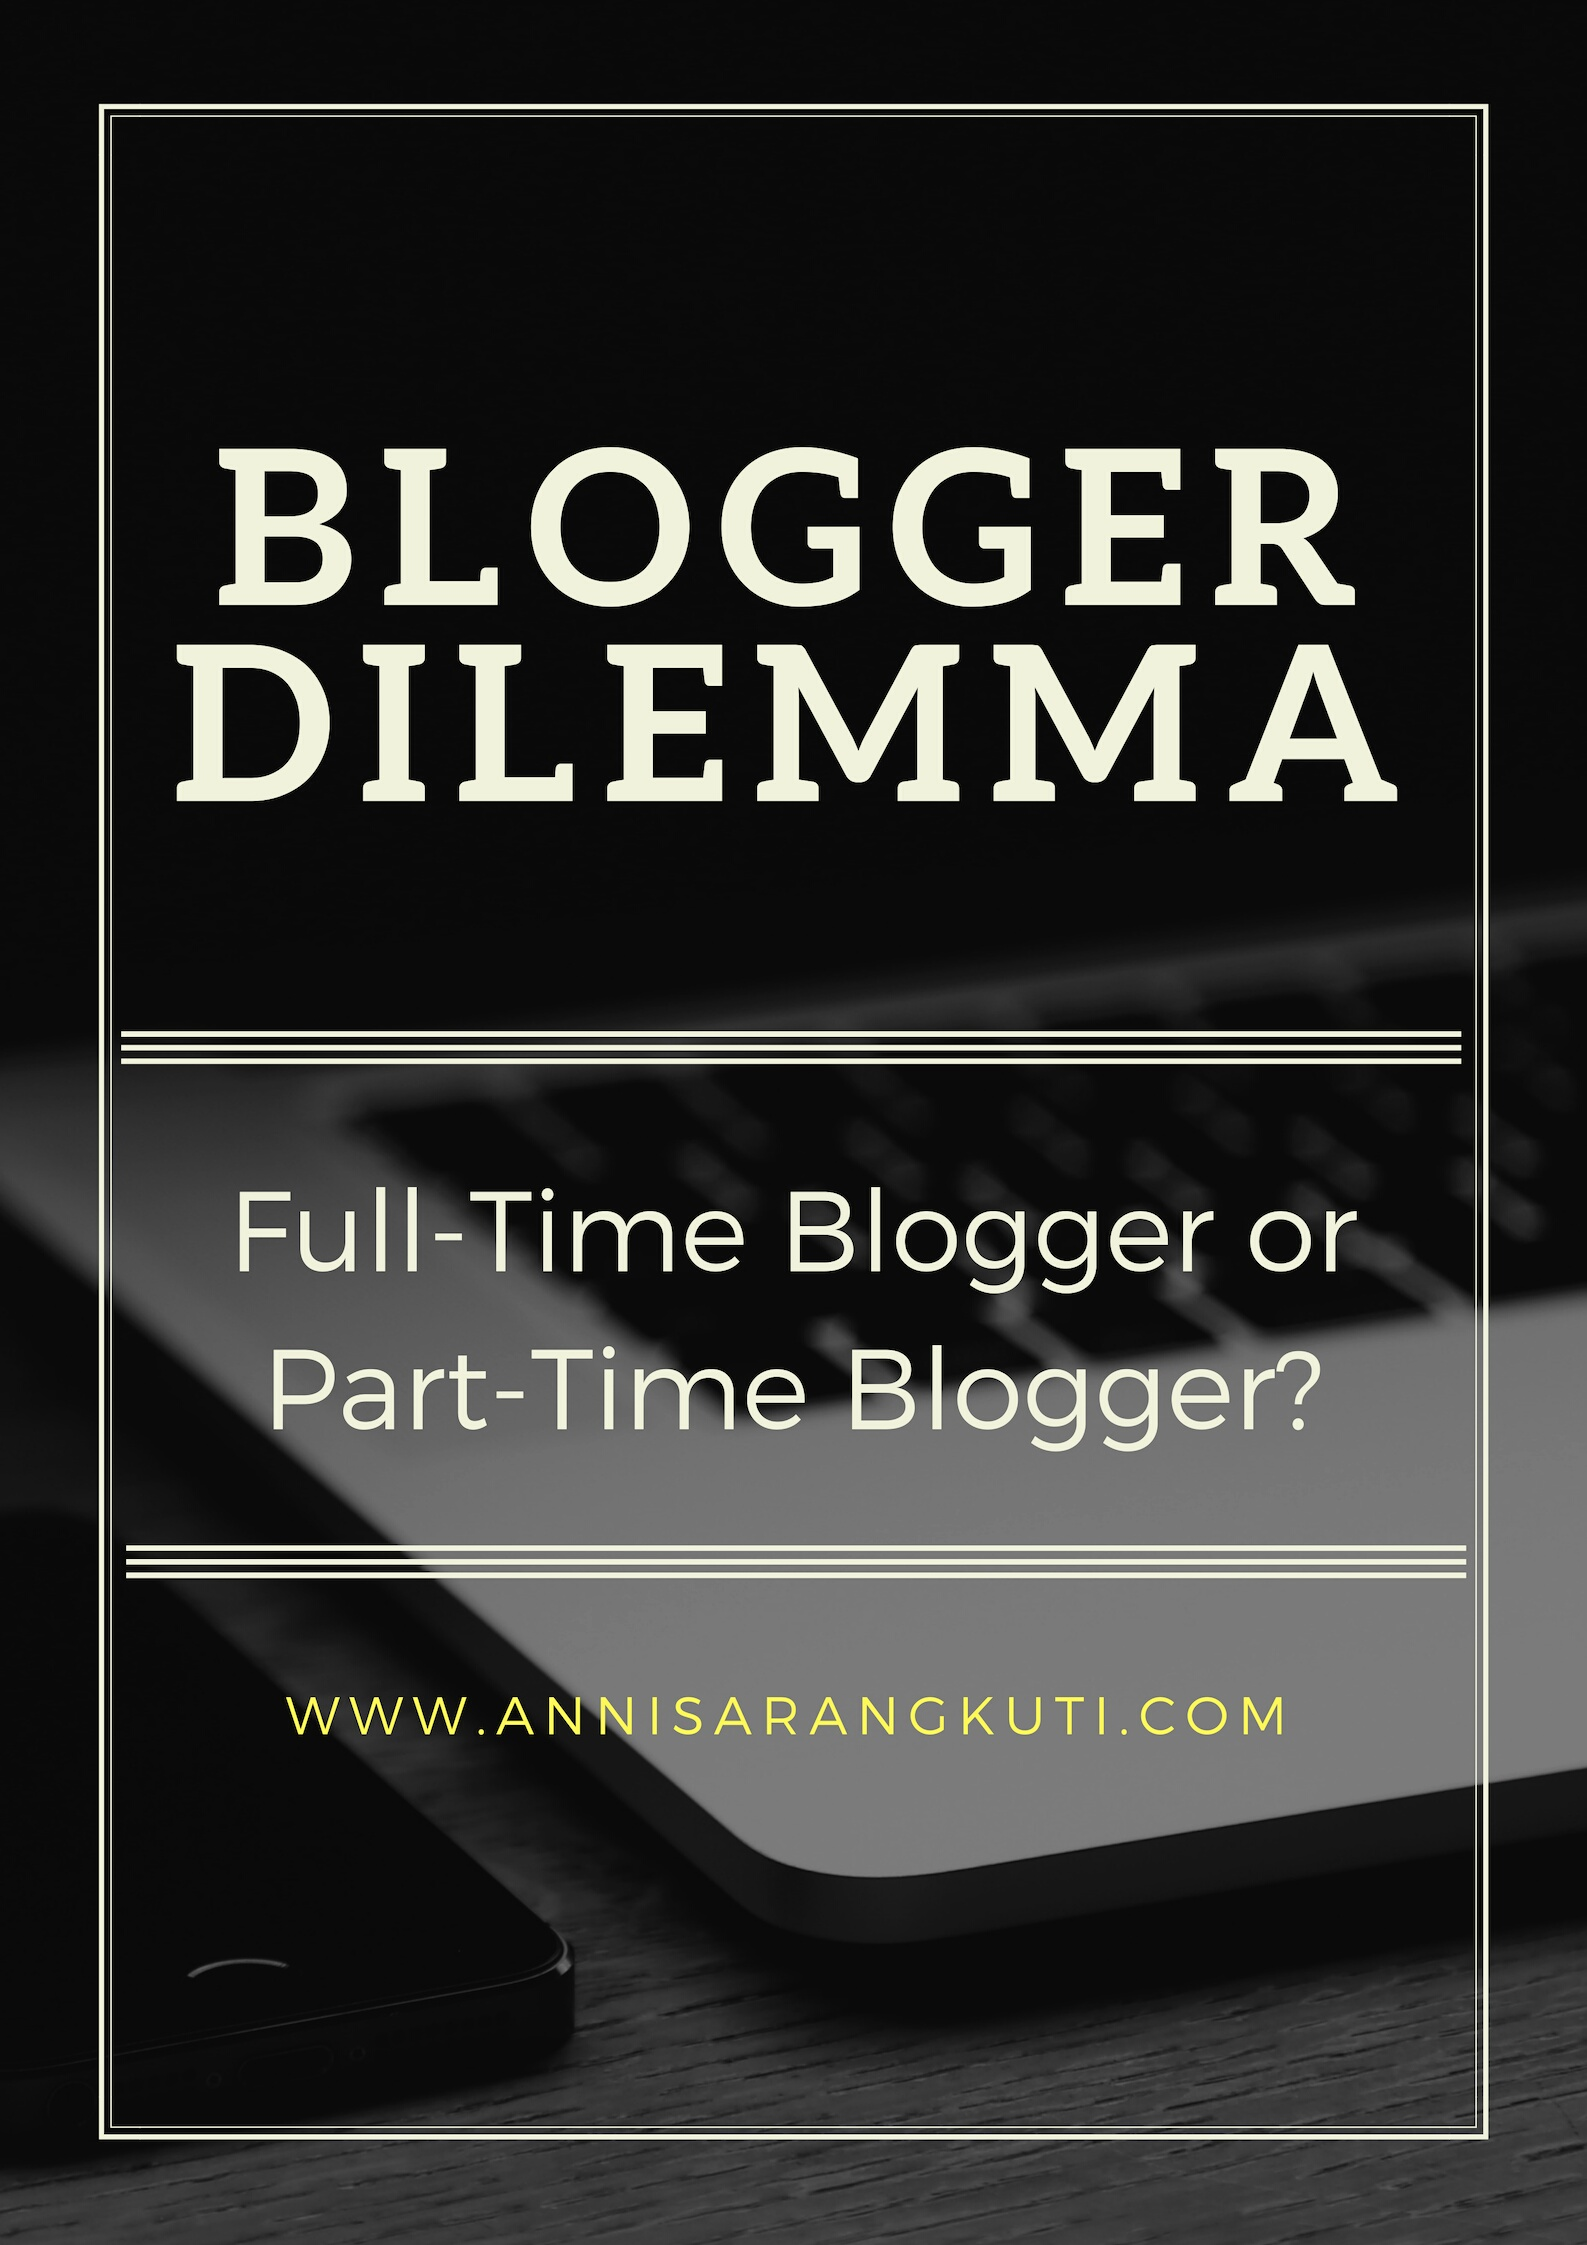 Blogger Dilemma: Full-Time Blogger or Part-Time Blogger?